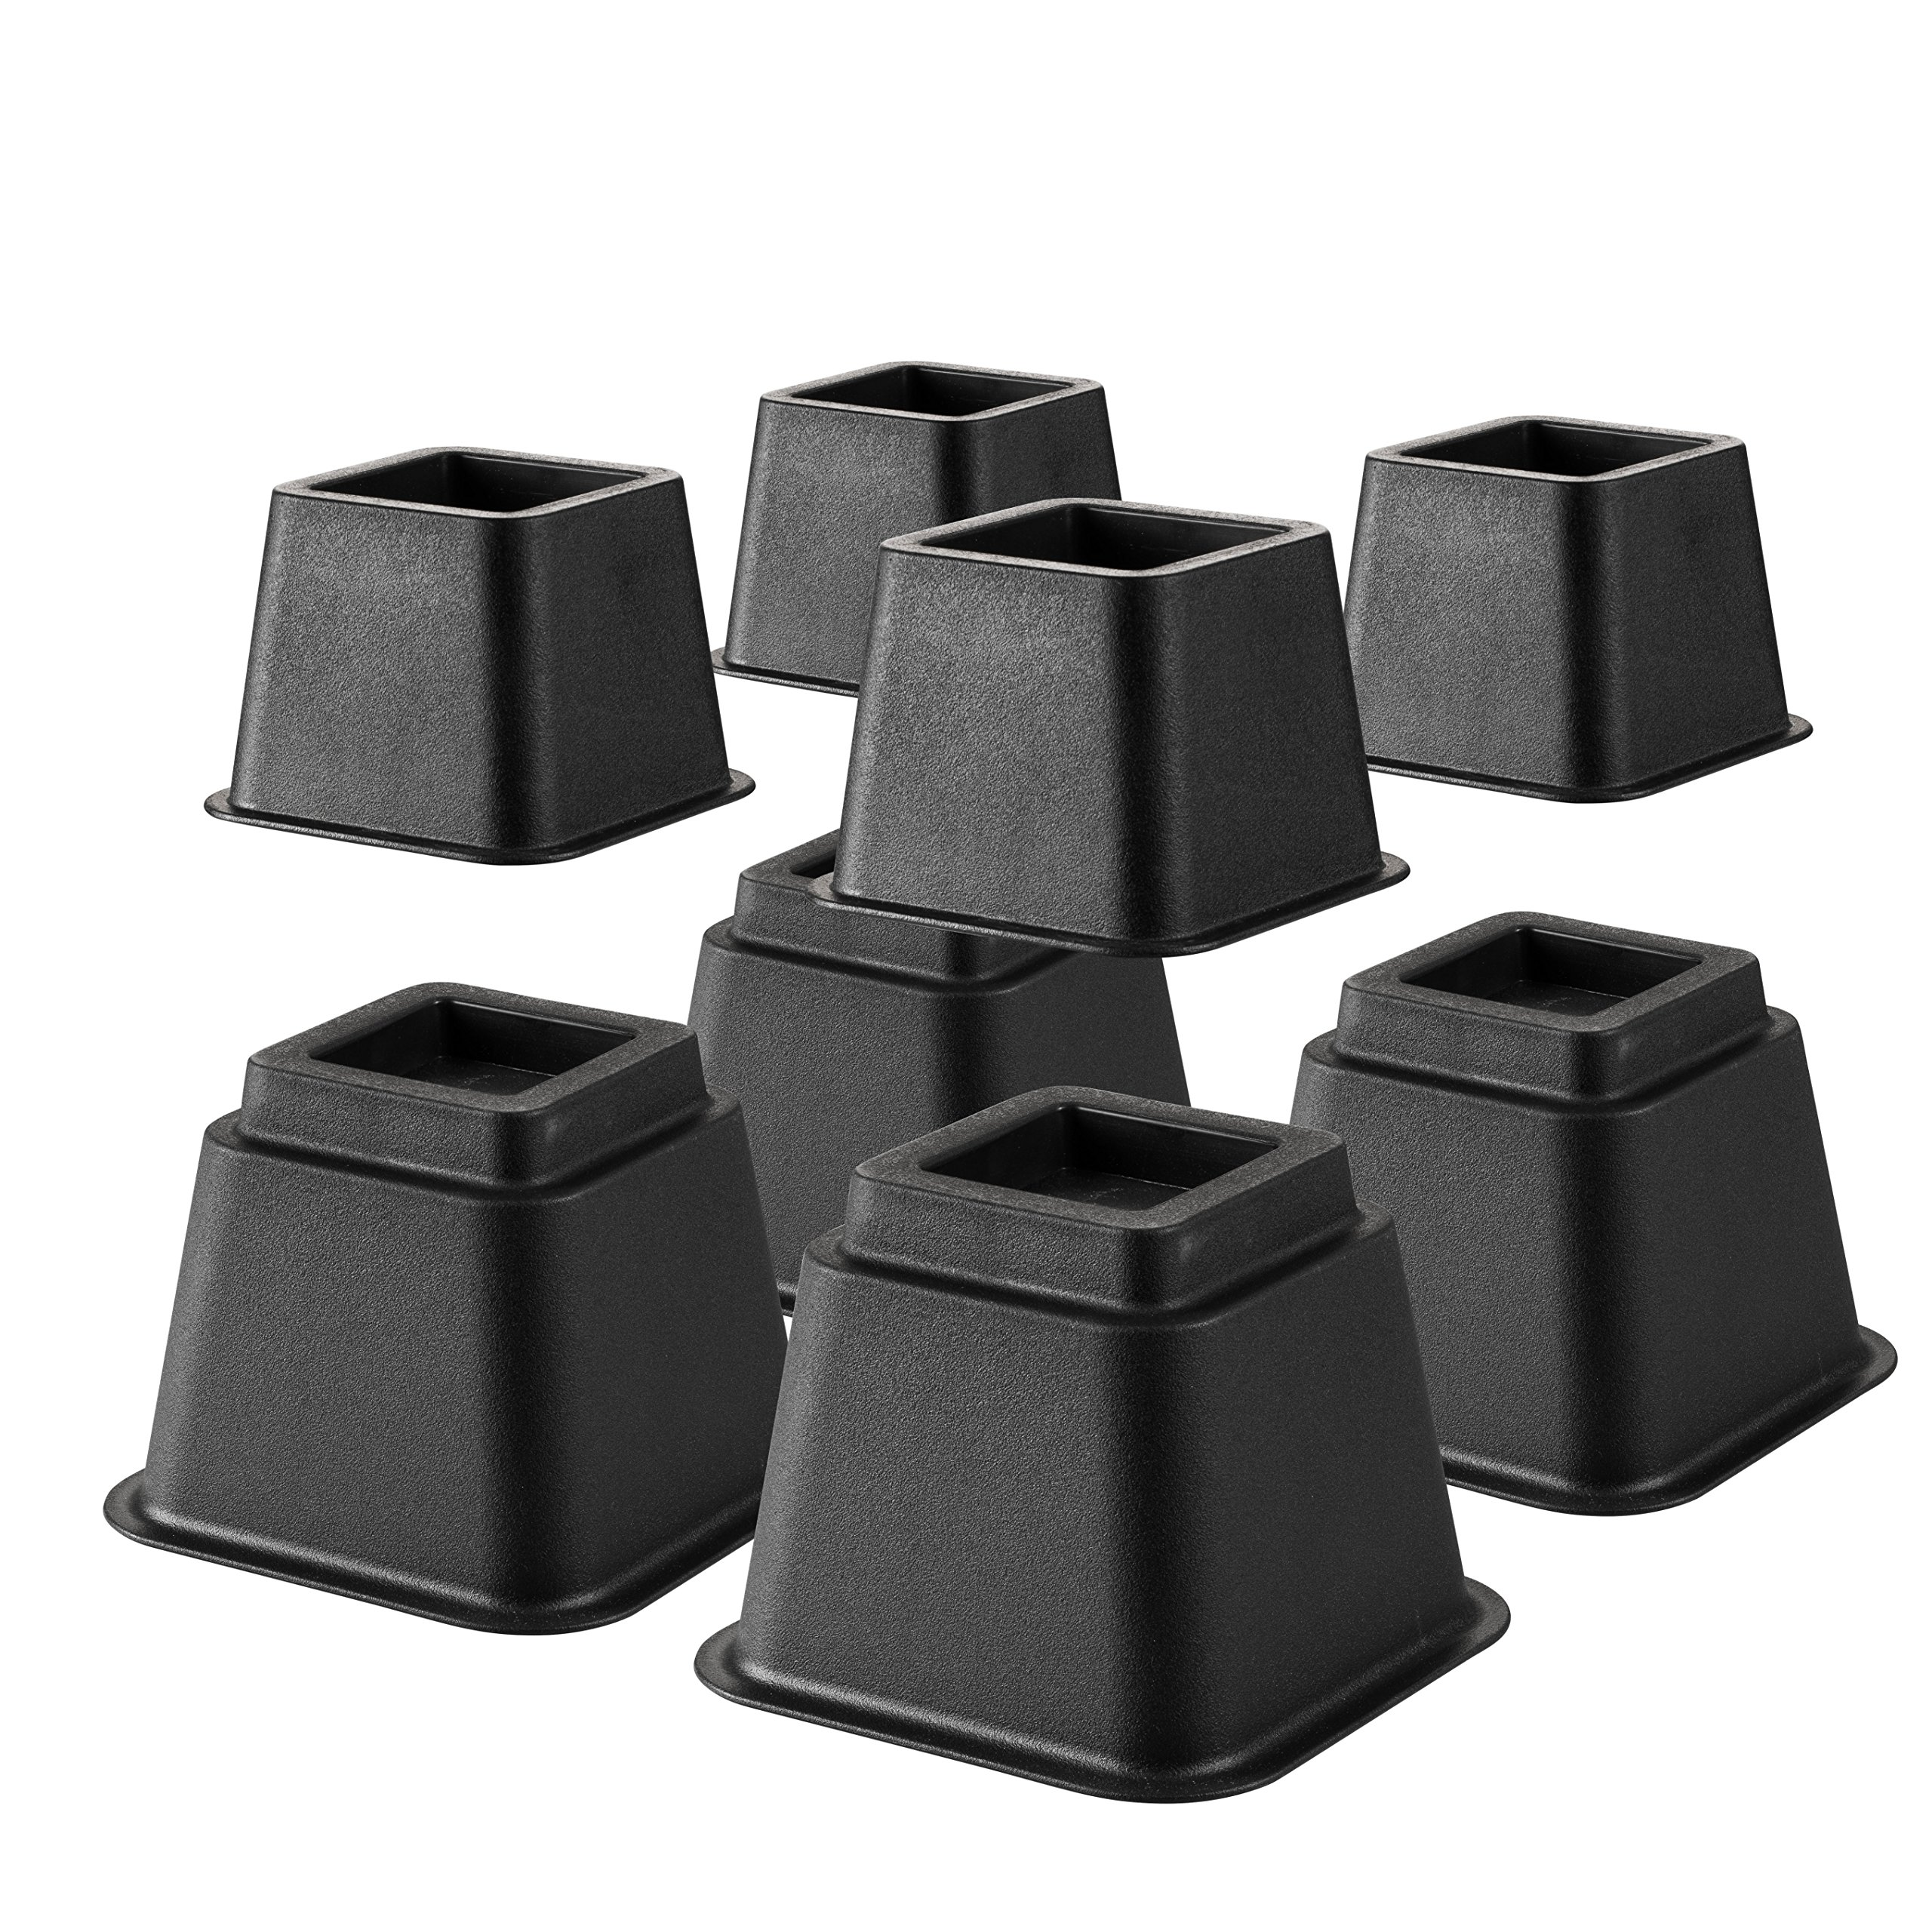 Define Essentials Heavy Duty Multi Height Bed Risers and Bed Lifts - 8 Piece Set - Adjustable to 8, 5 or 3 Inch Heights